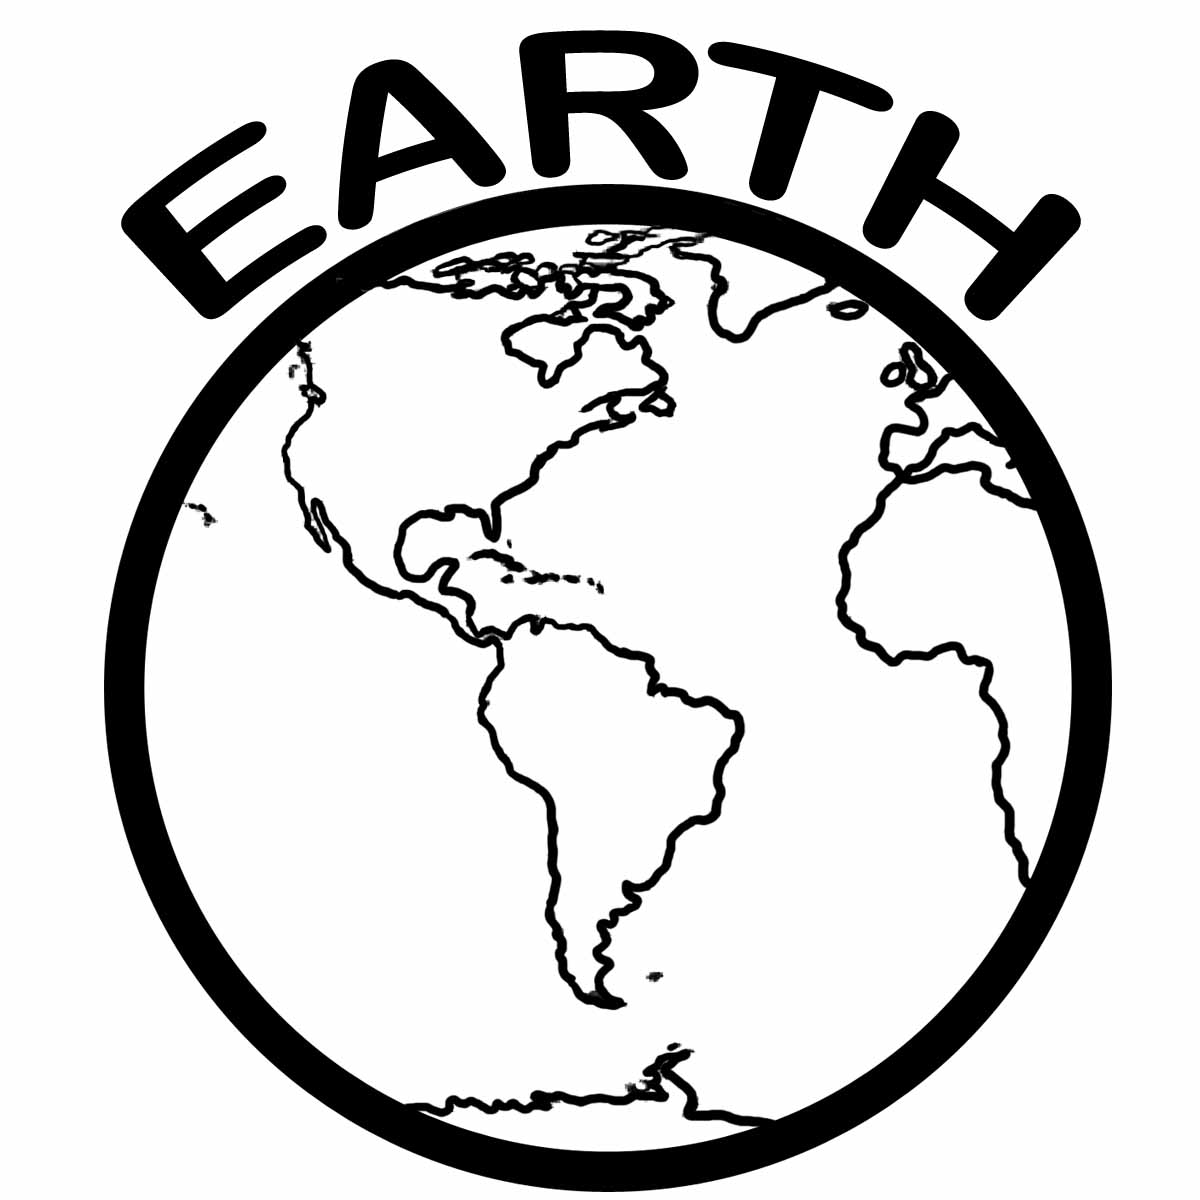 Globe Earth Clipart Black And White Free Clipart Images 4